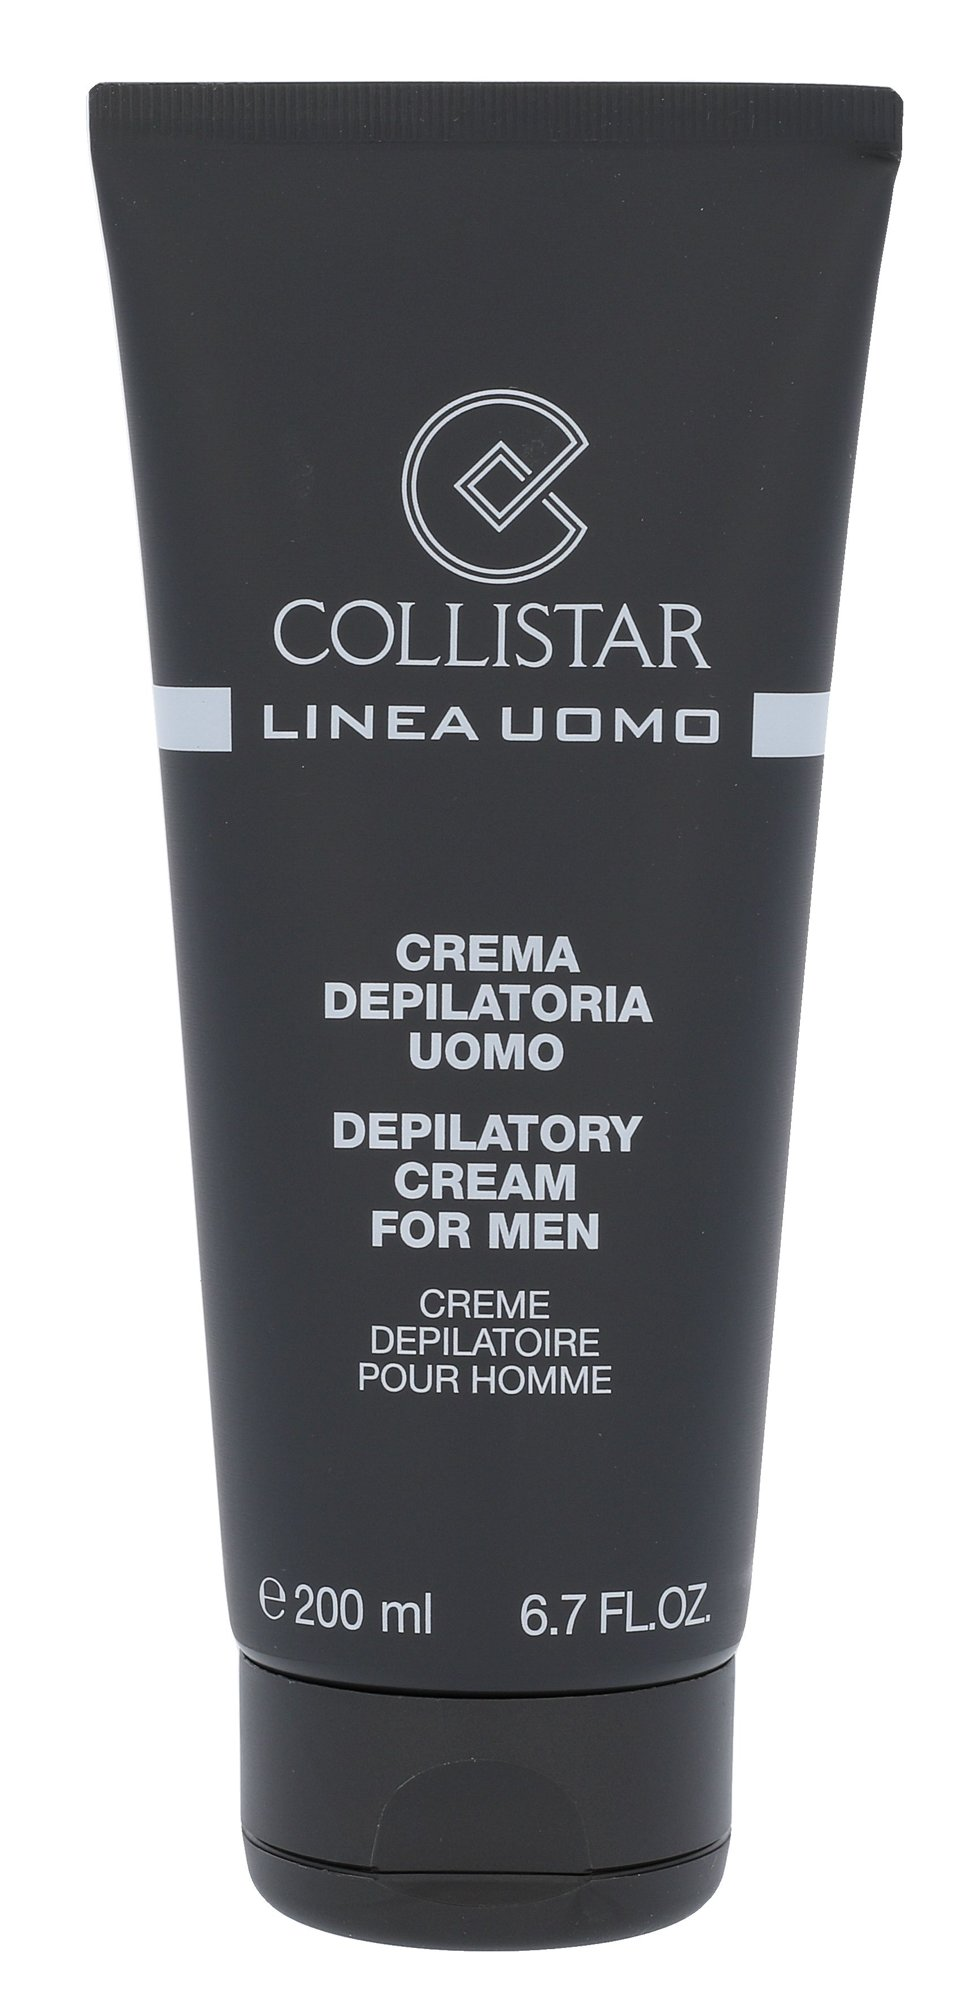 Collistar Linea Uomo Cosmetic 200ml